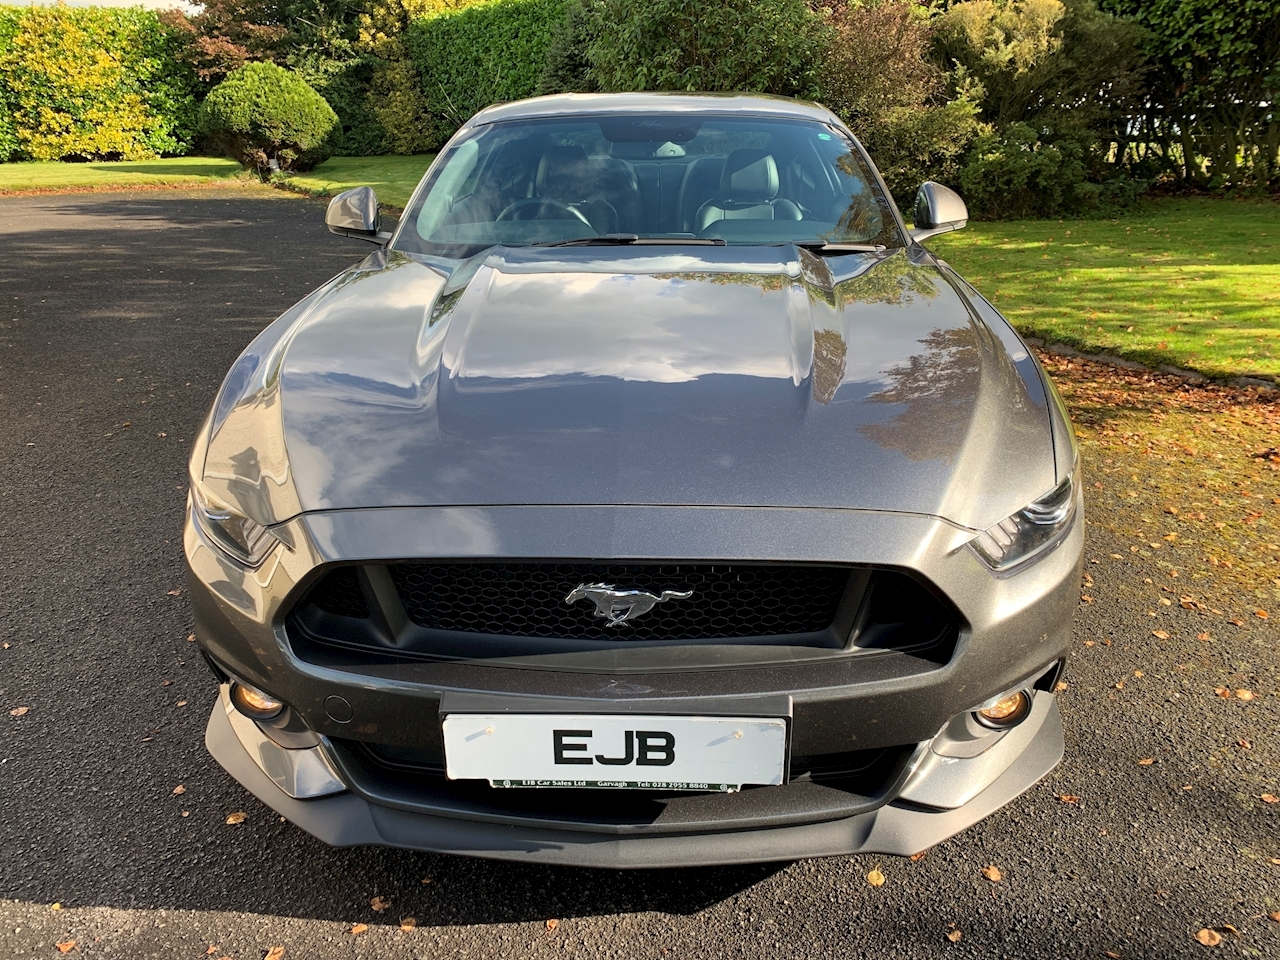 Ford Mustang GT Fastback 5.0 SelShift Petrol